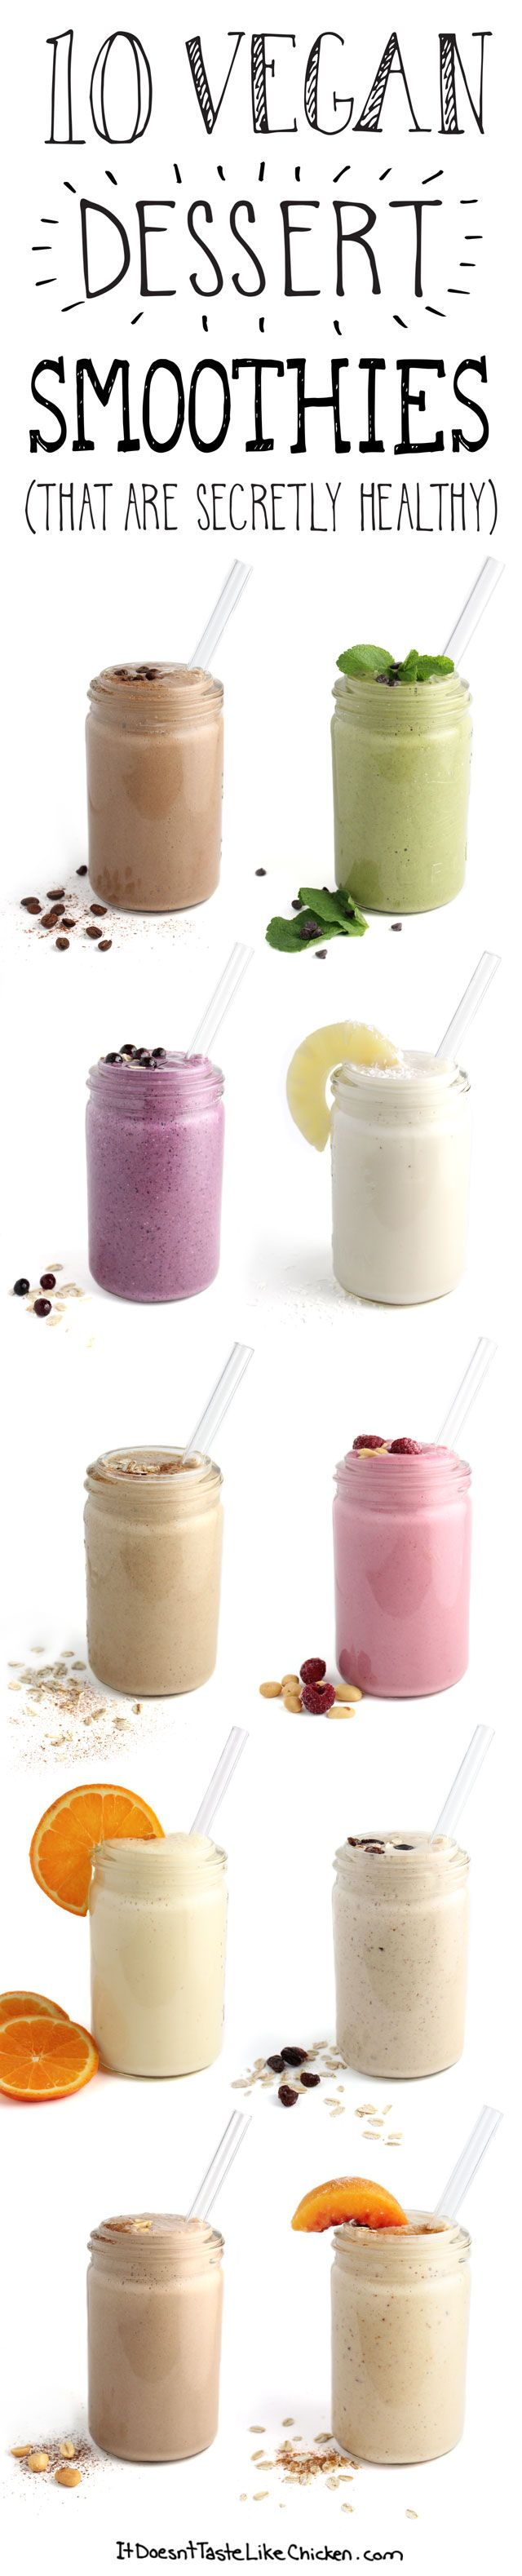 10 Vegan Dessert Smoothies (that are secretly healthy)! Click to check out all the dessert inspired flavours. #itdoesnttastelikechicken